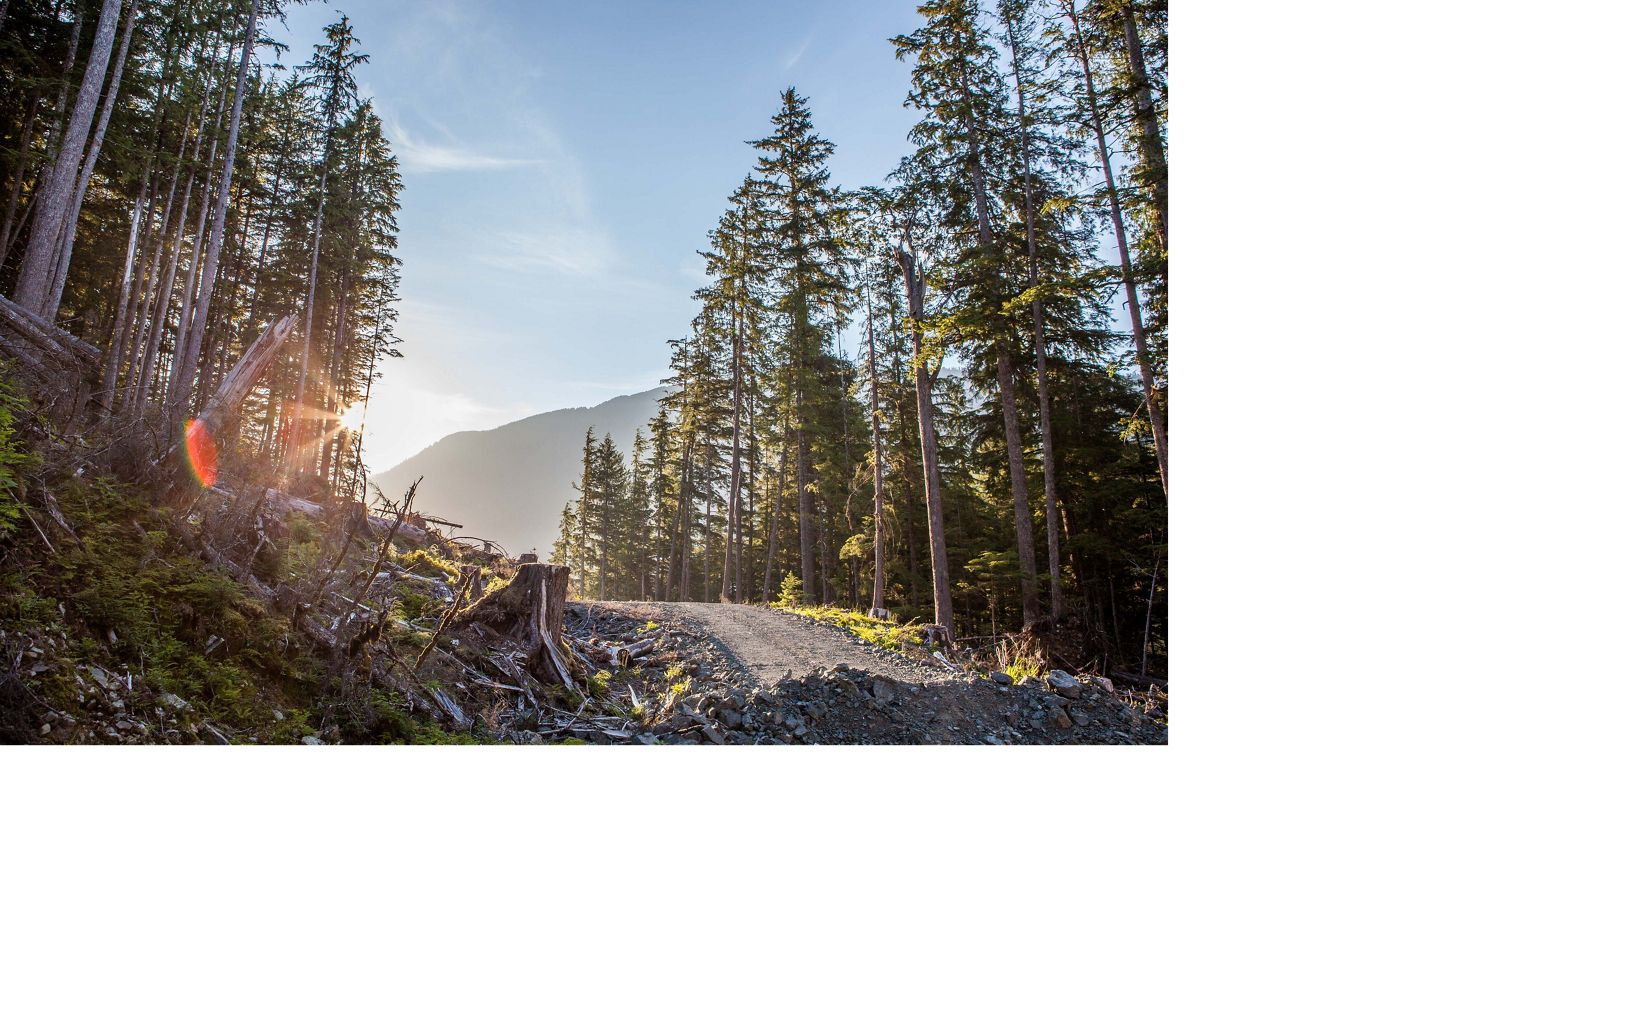 Clear-cutting in Tongass National Forest on Prince of Wales Island, Alaska.